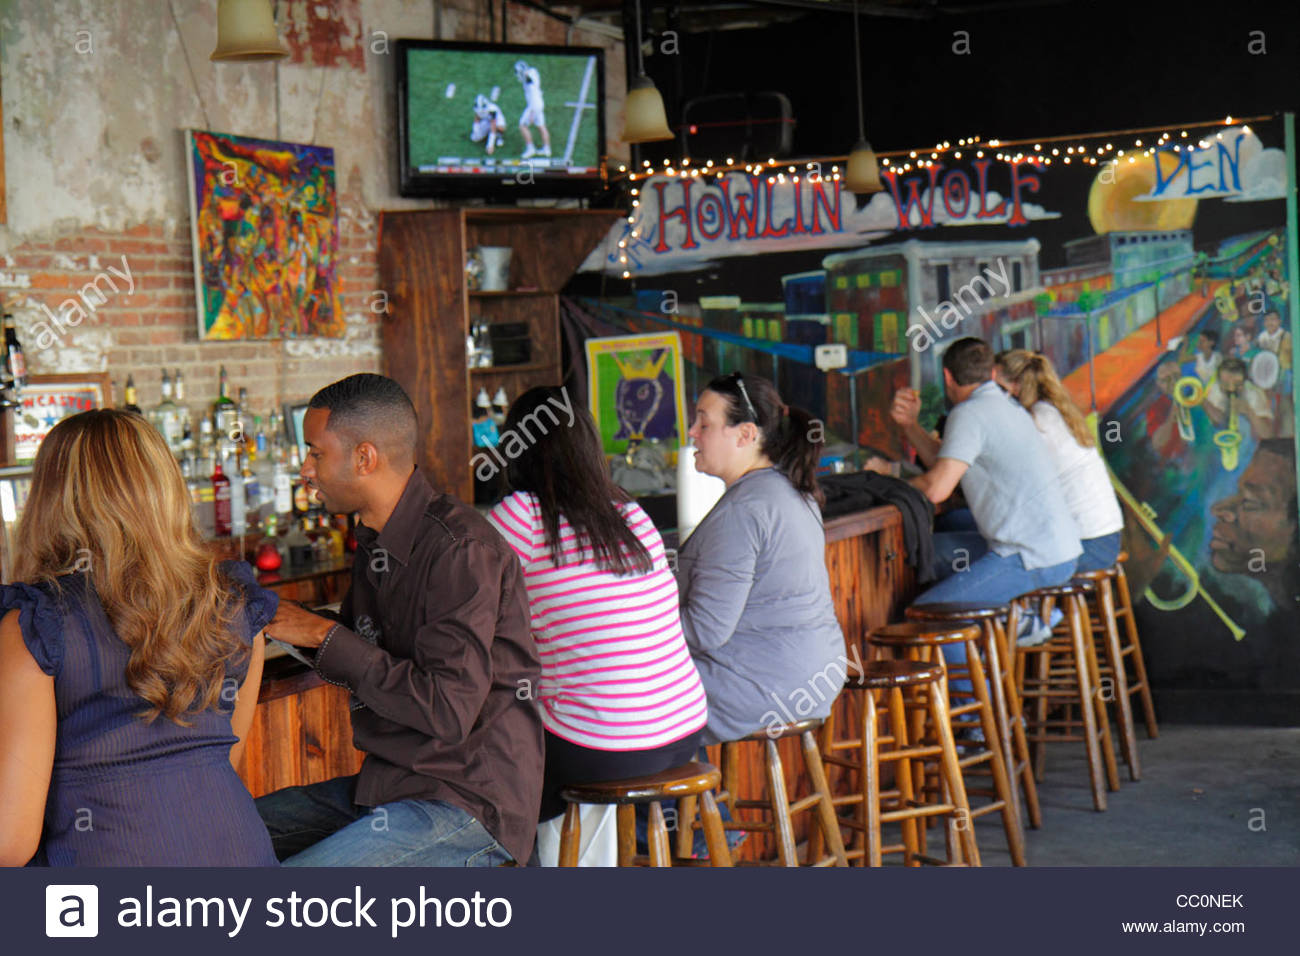 New Orleans Louisiana Warehouse District Howlin Wolf Den bar lounge live music venue business barstool Black man - Stock Image